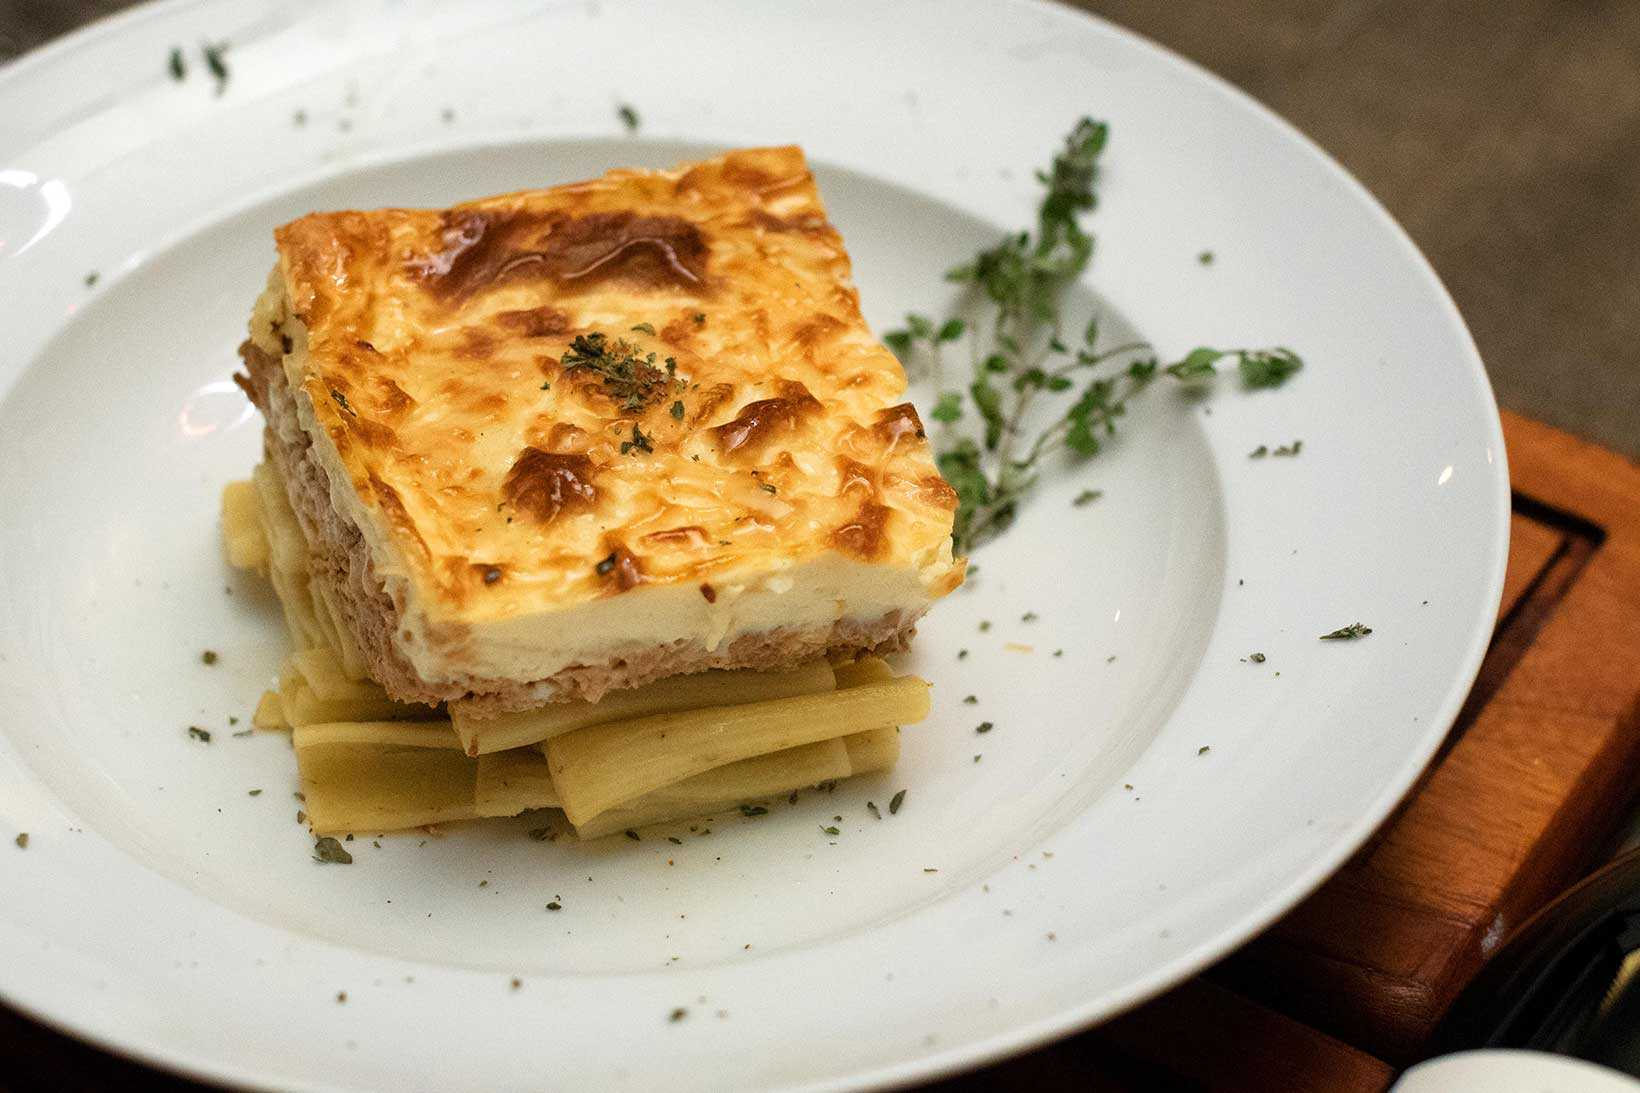 The Greek version of Lasagna. Layers of spiced minced meat with pasta and topped with a cheese infused bechamel.